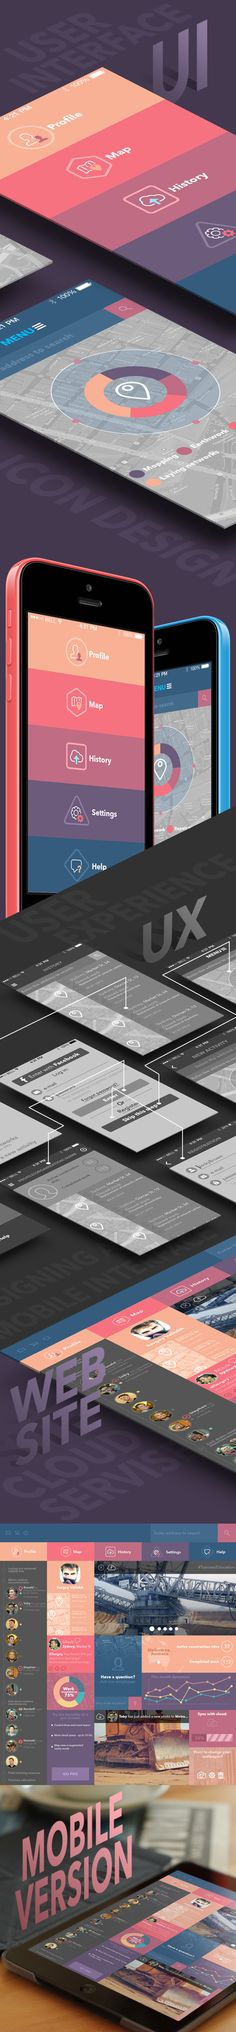 55 Amazing Mobile App UI Designs with Ultimate User Experience - 11